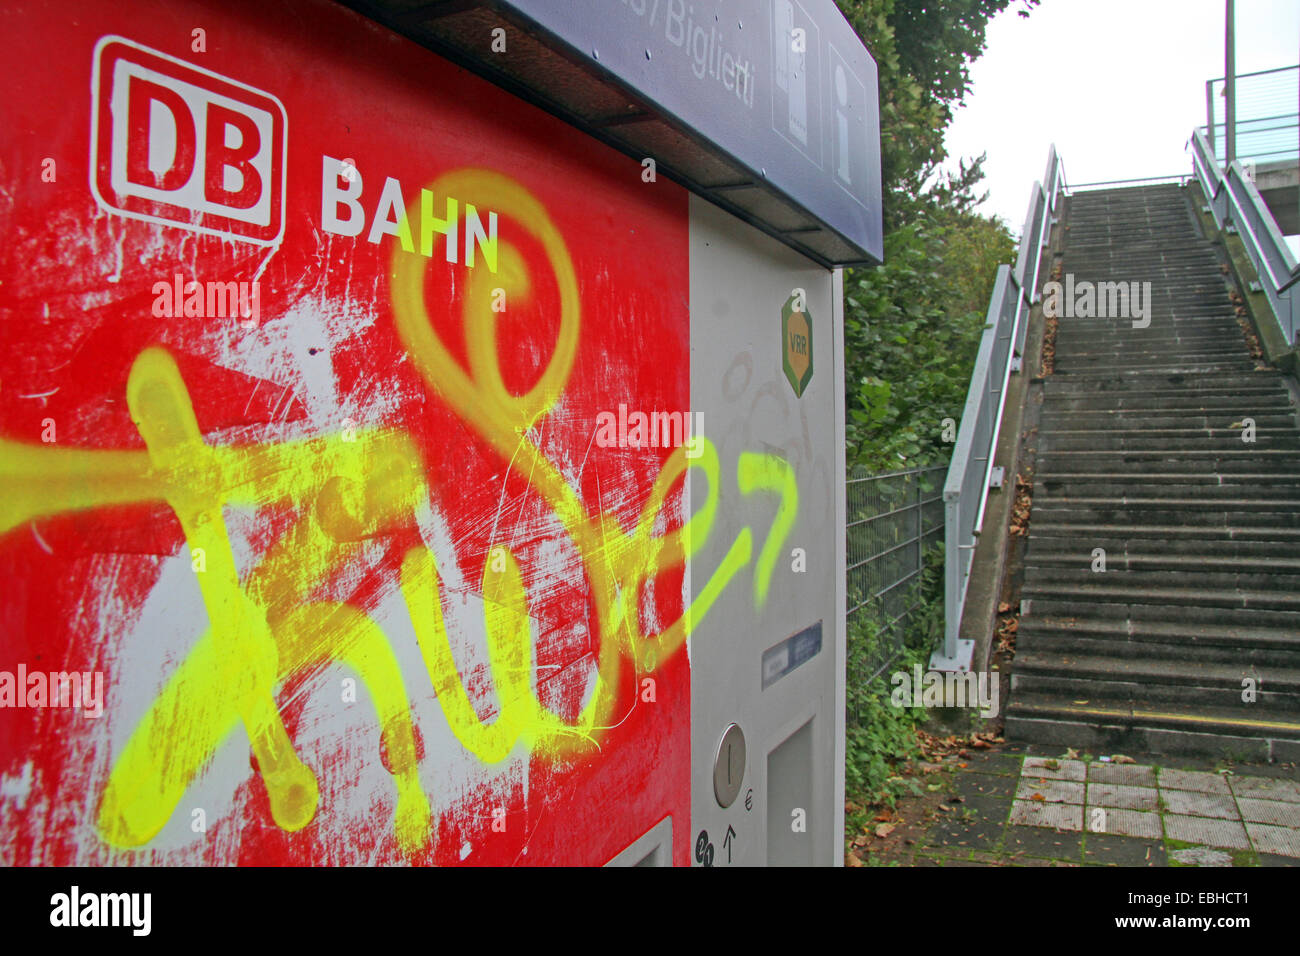 smearings at ticket machine on the train platform, Germany - Stock Image